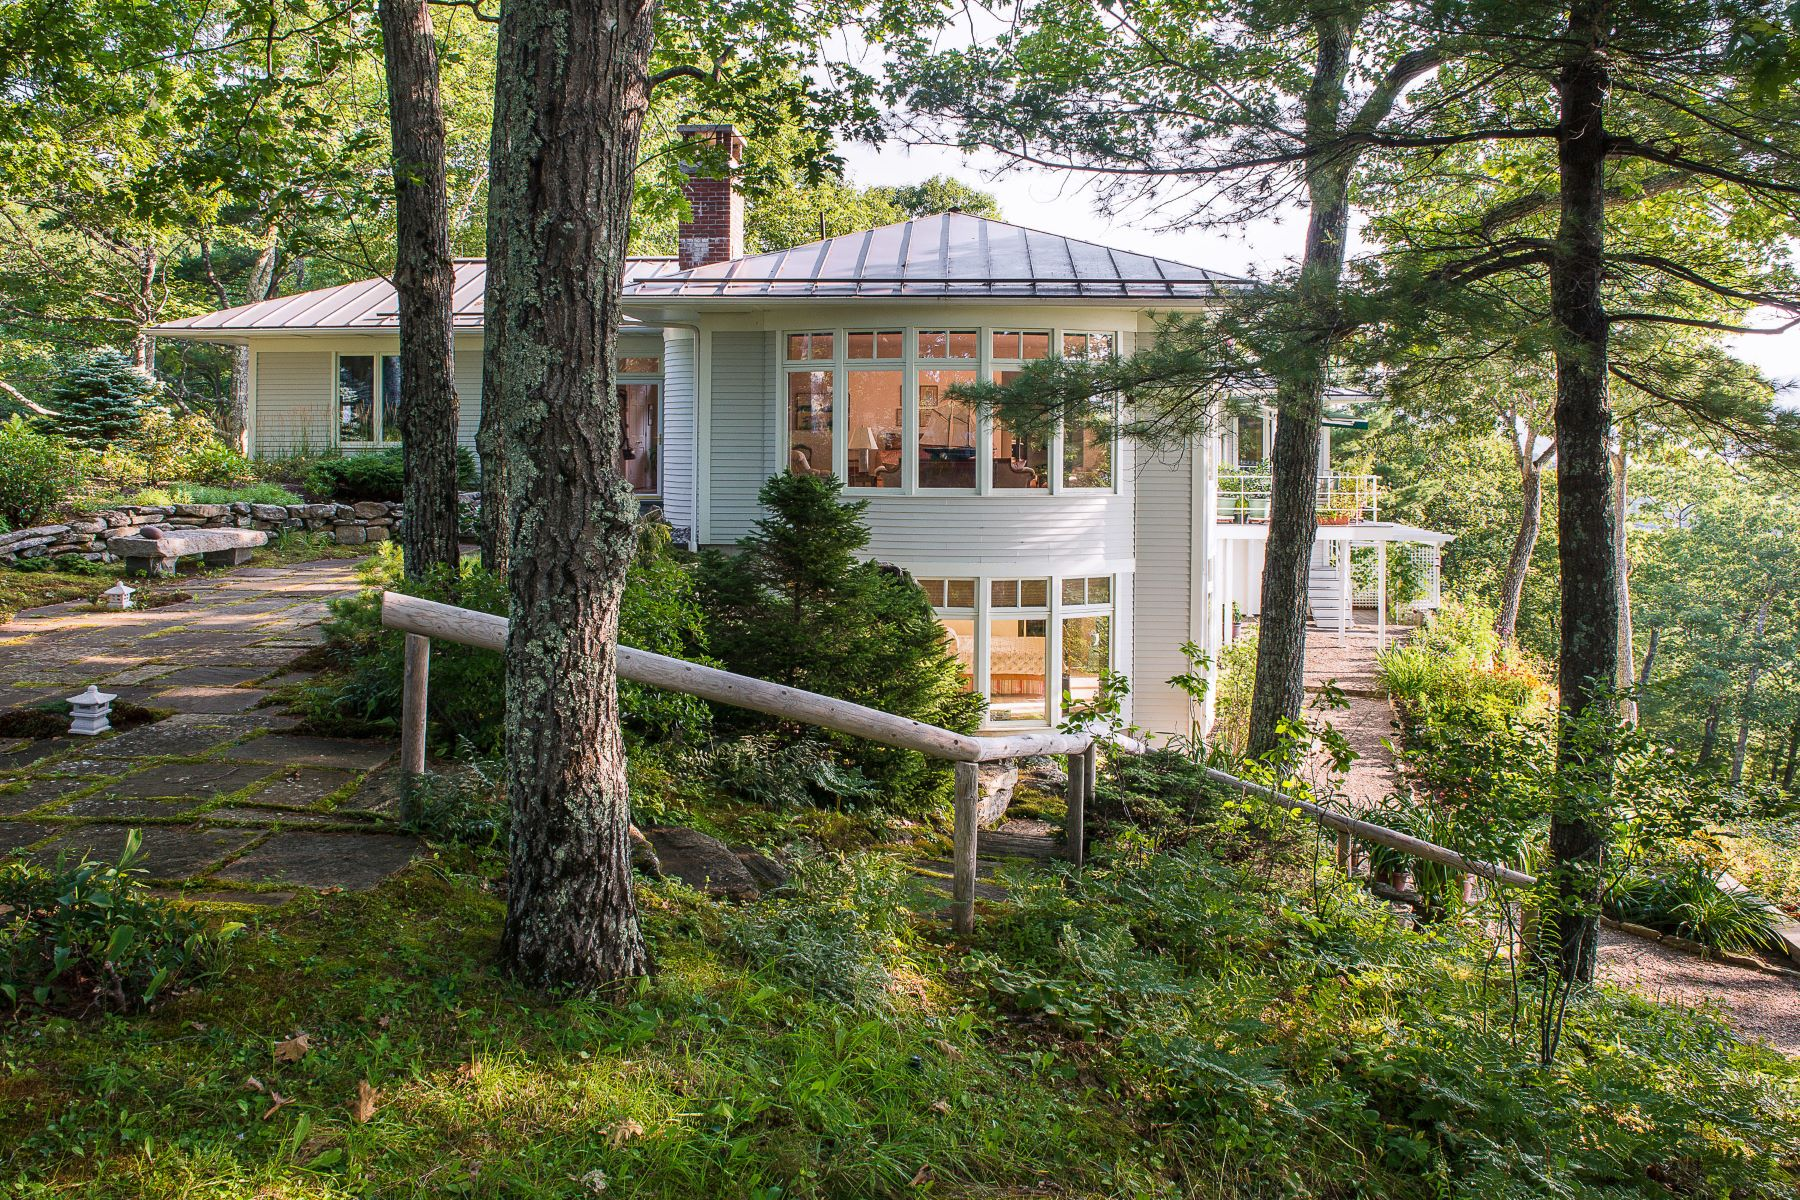 Single Family Homes for Sale at 125 Bald Mountain Road Camden, Maine 04843 United States